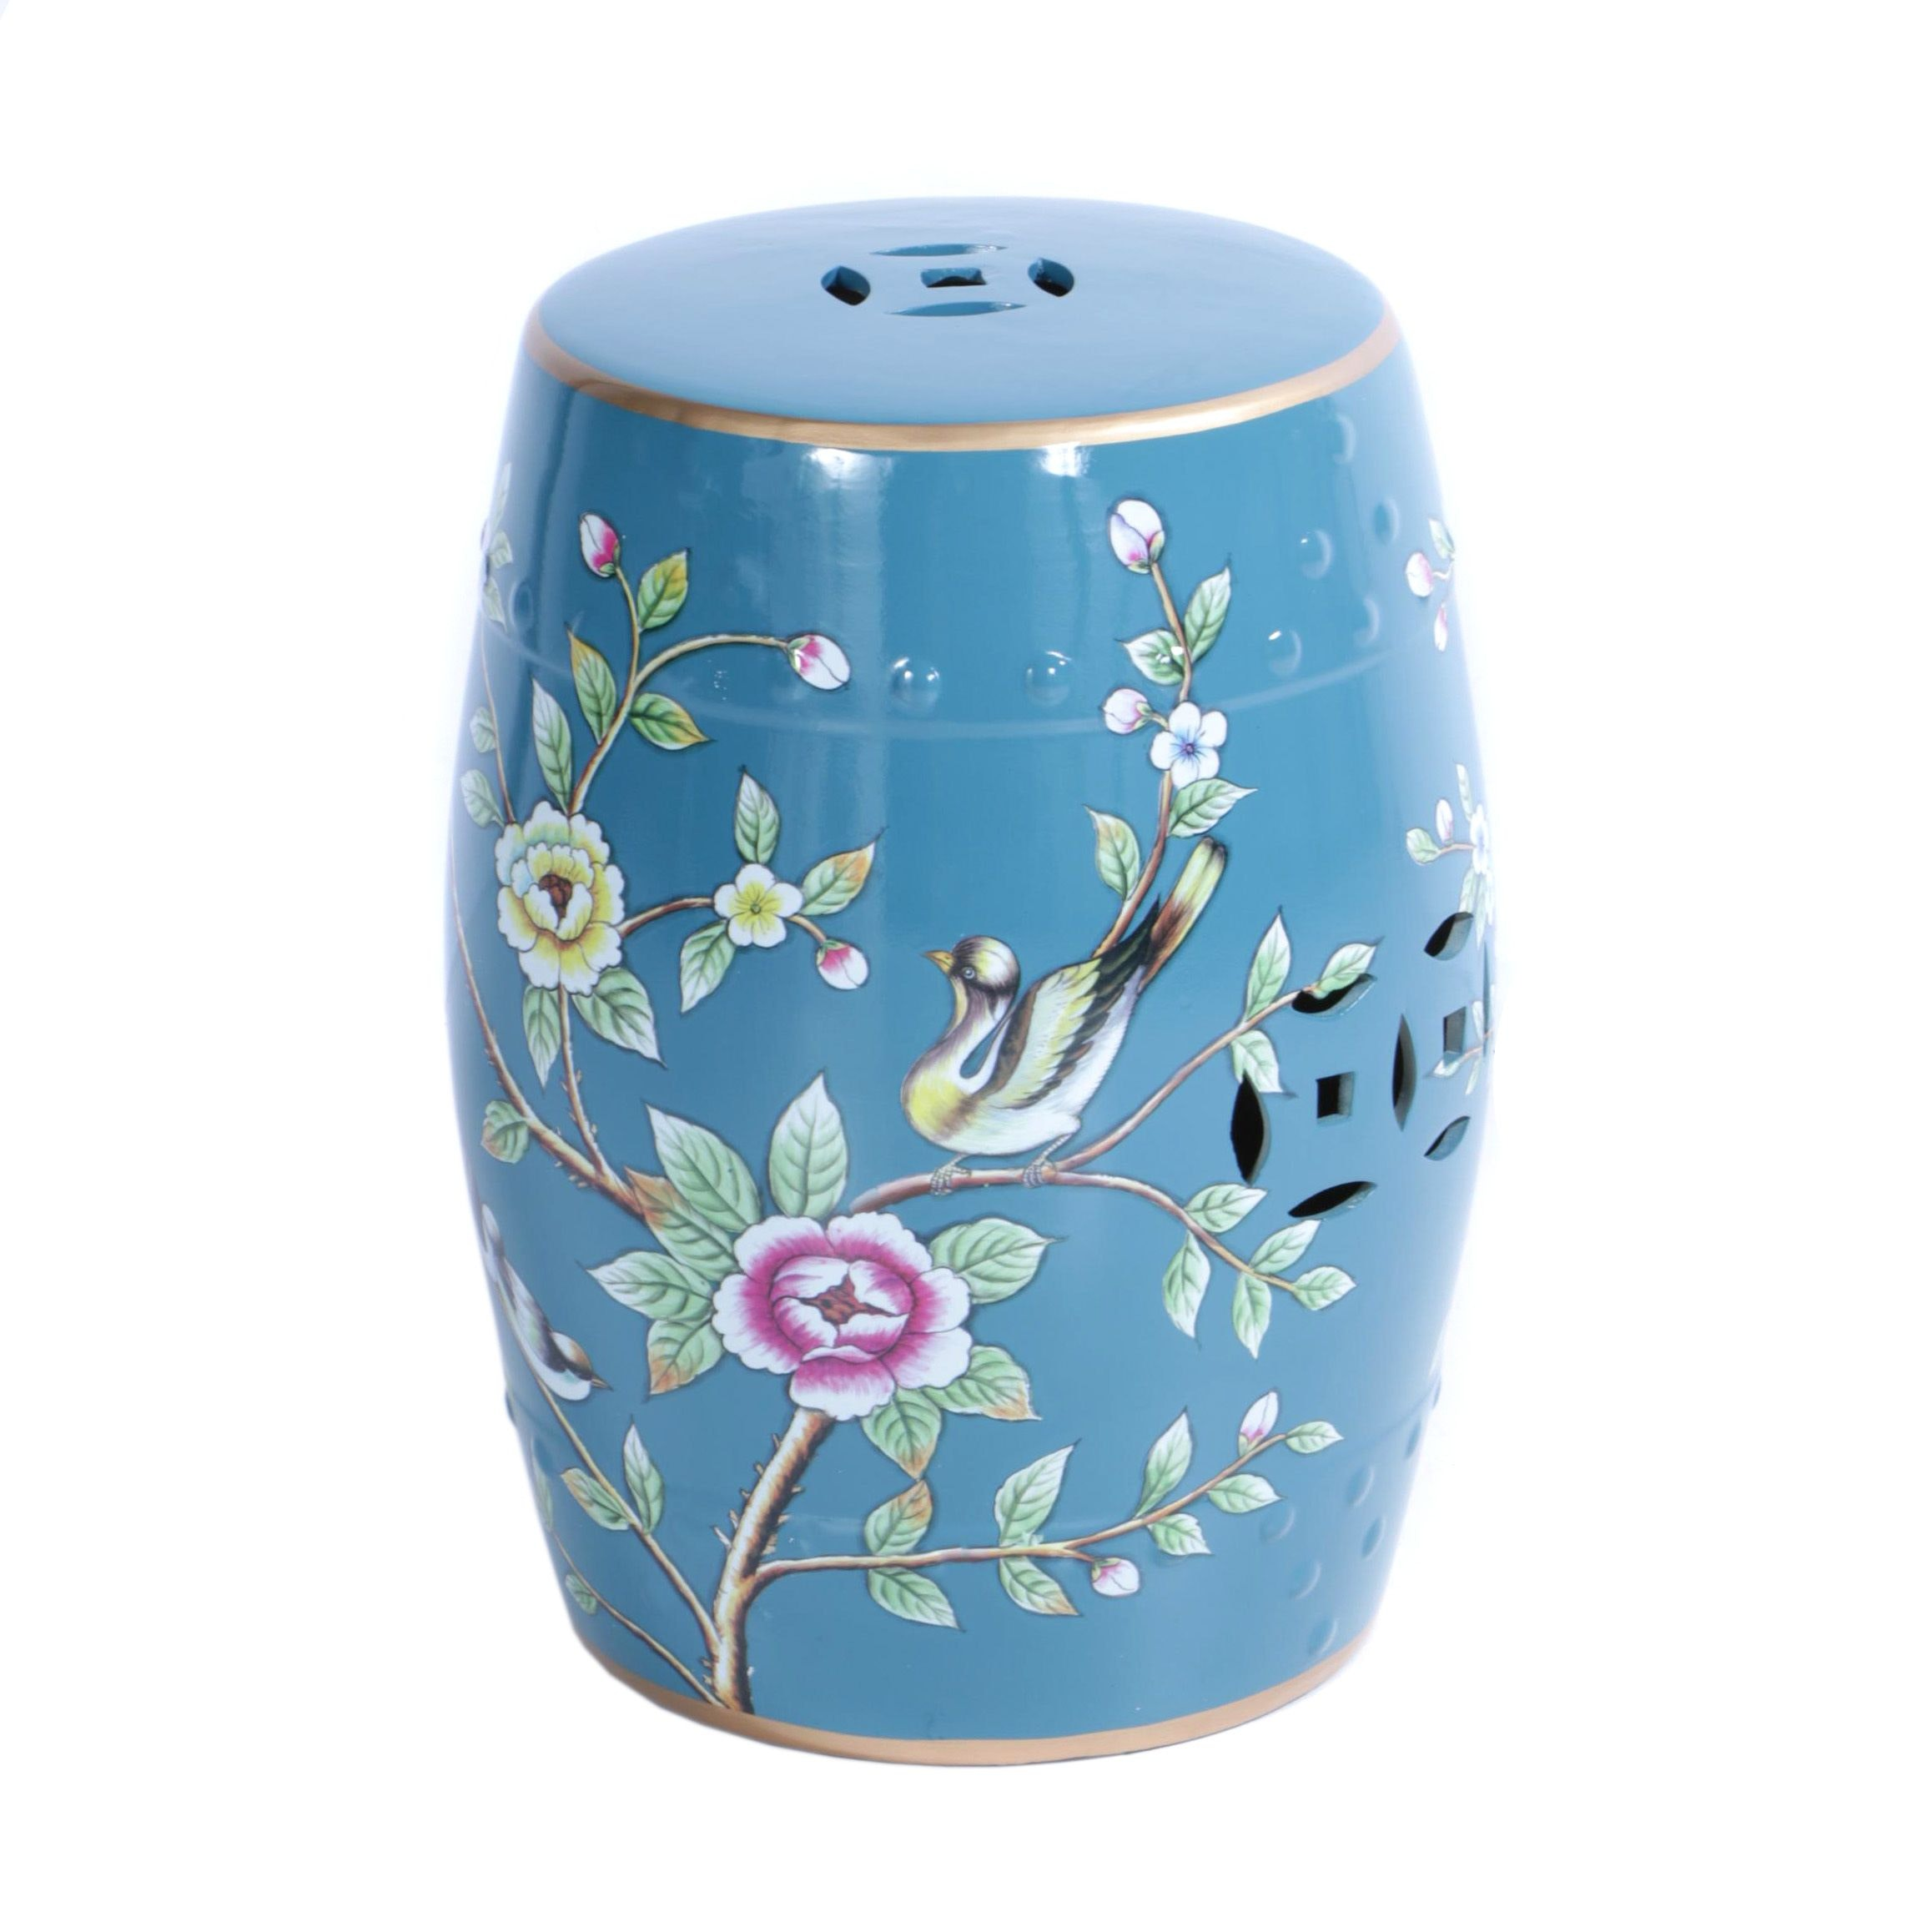 Floral Themed Blue Ceramic Garden Stool With Bird Accents